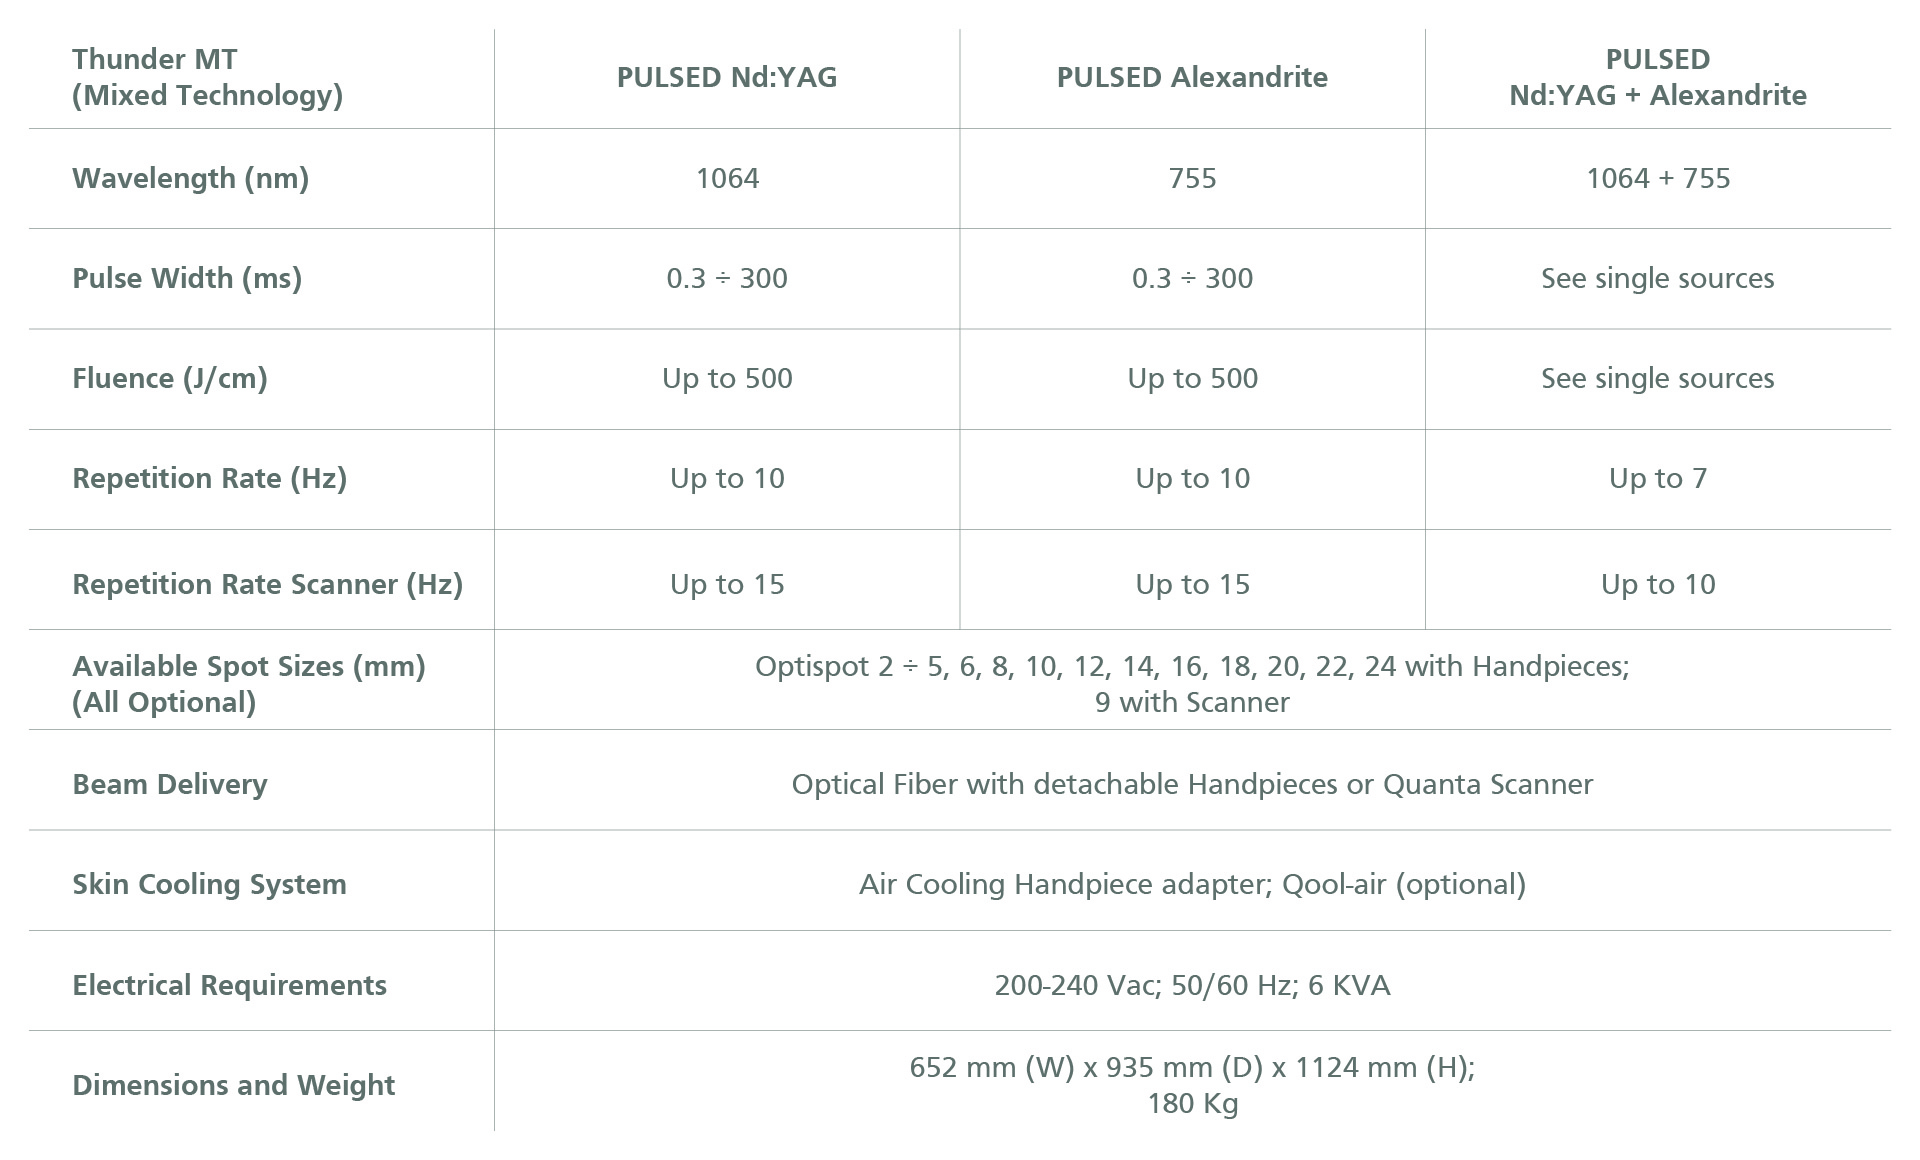 Thunder MT Technical Specifications